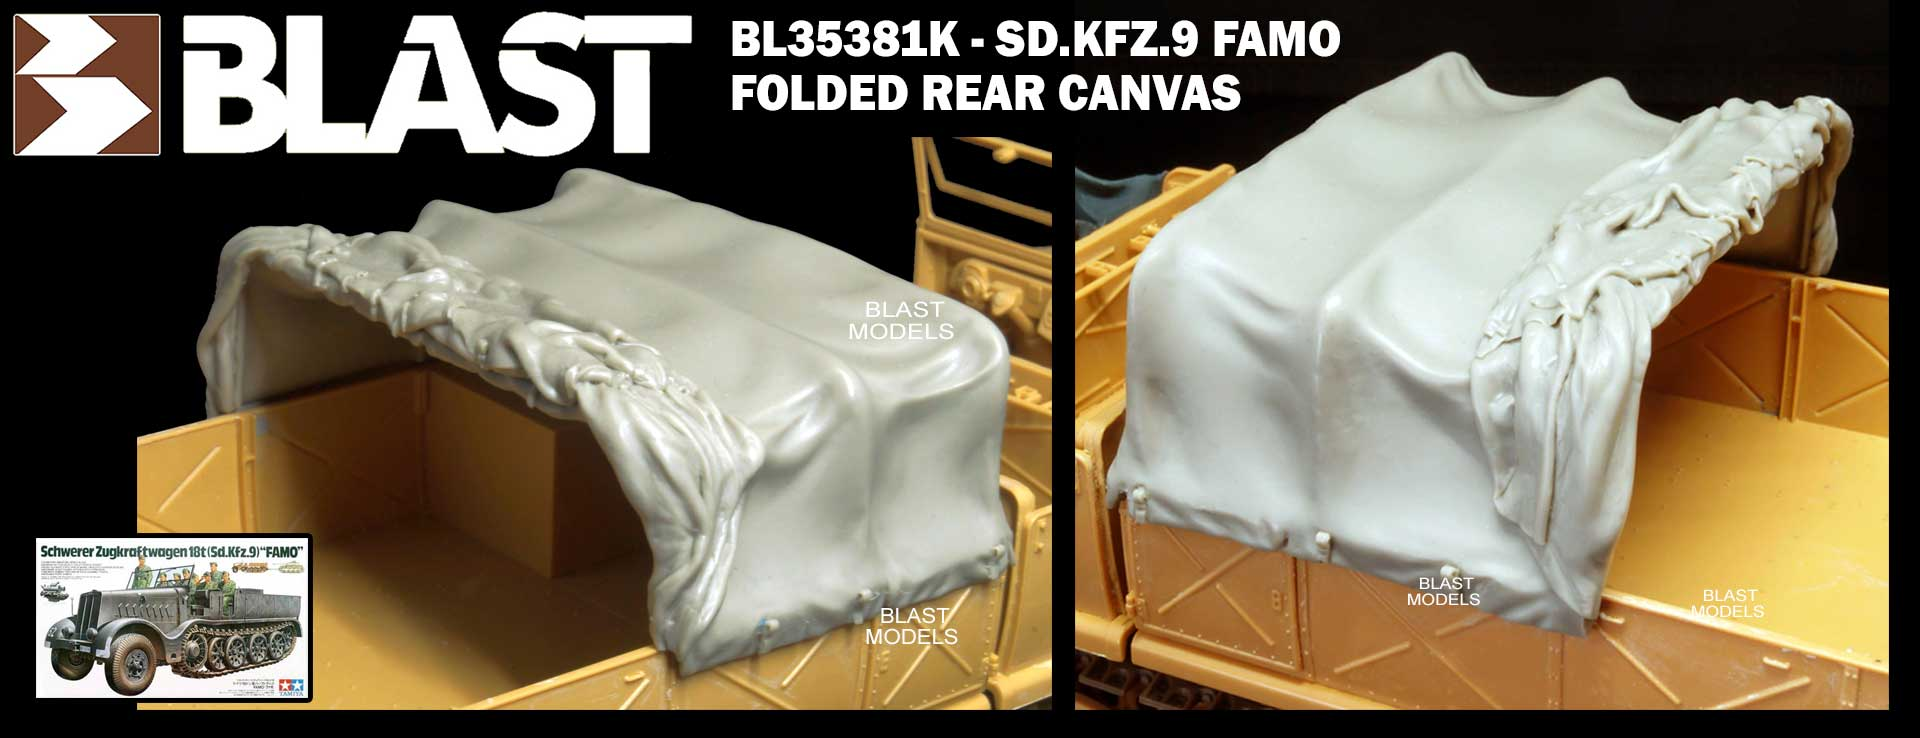 BL35381K GERMAN SD.KFZ.9 FAMO FOLDED REAR CANVAS